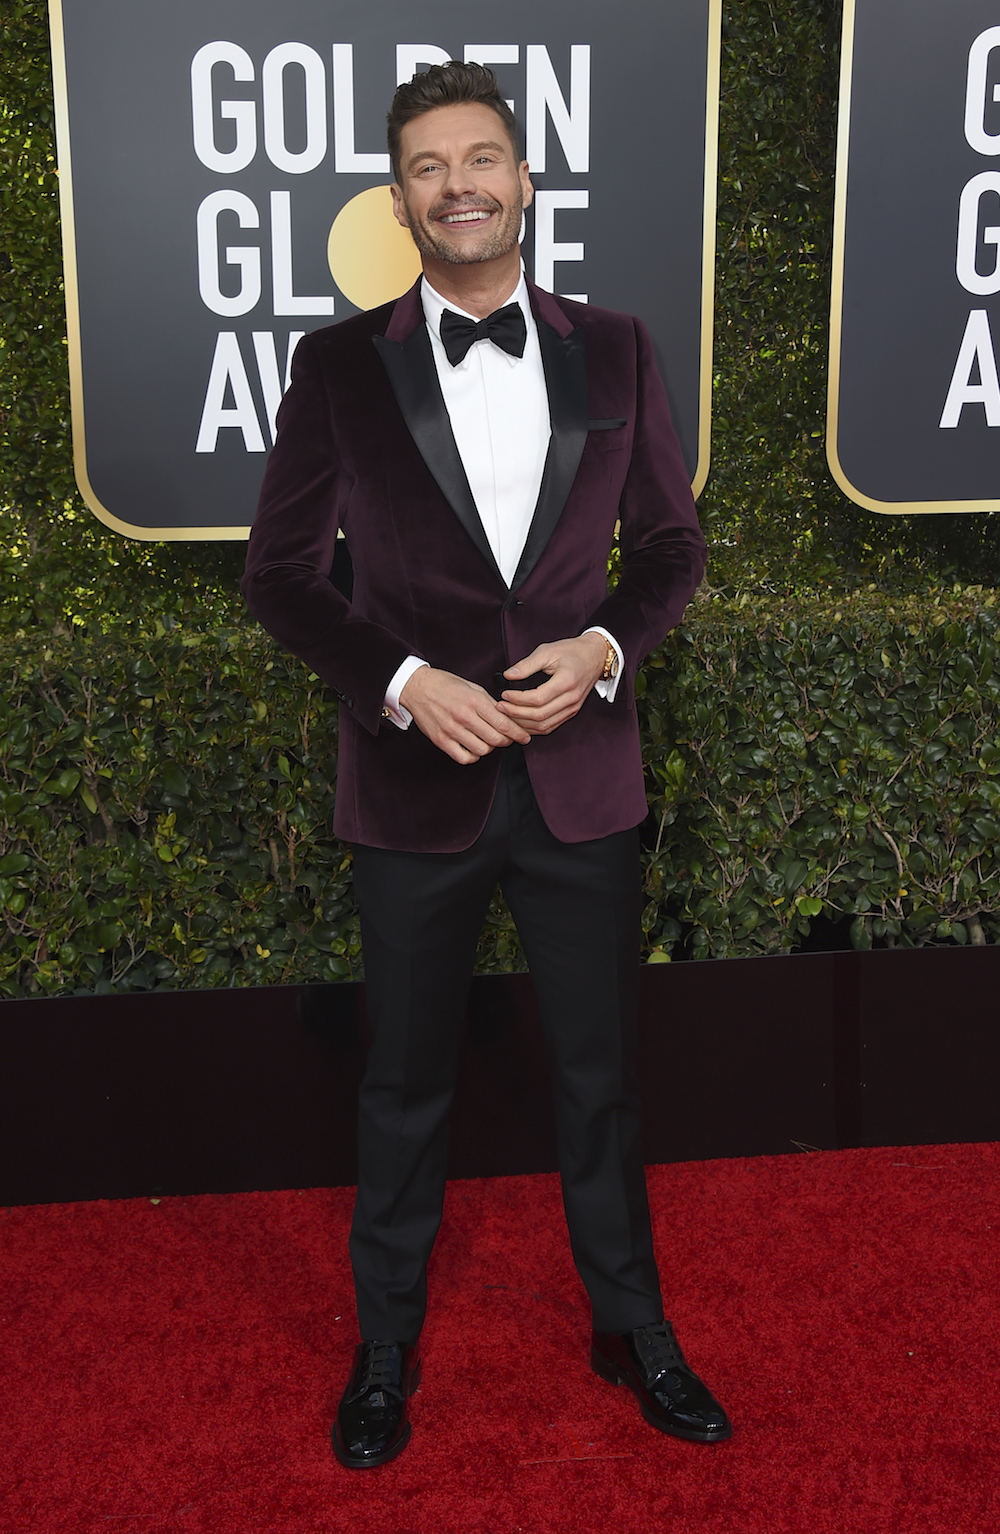 "<div class=""meta image-caption""><div class=""origin-logo origin-image ap""><span>AP</span></div><span class=""caption-text"">Ryan Seacrest arrives at the 76th annual Golden Globe Awards at the Beverly Hilton Hotel on Sunday, Jan. 6, 2019, in Beverly Hills, Calif. (Invision)</span></div>"